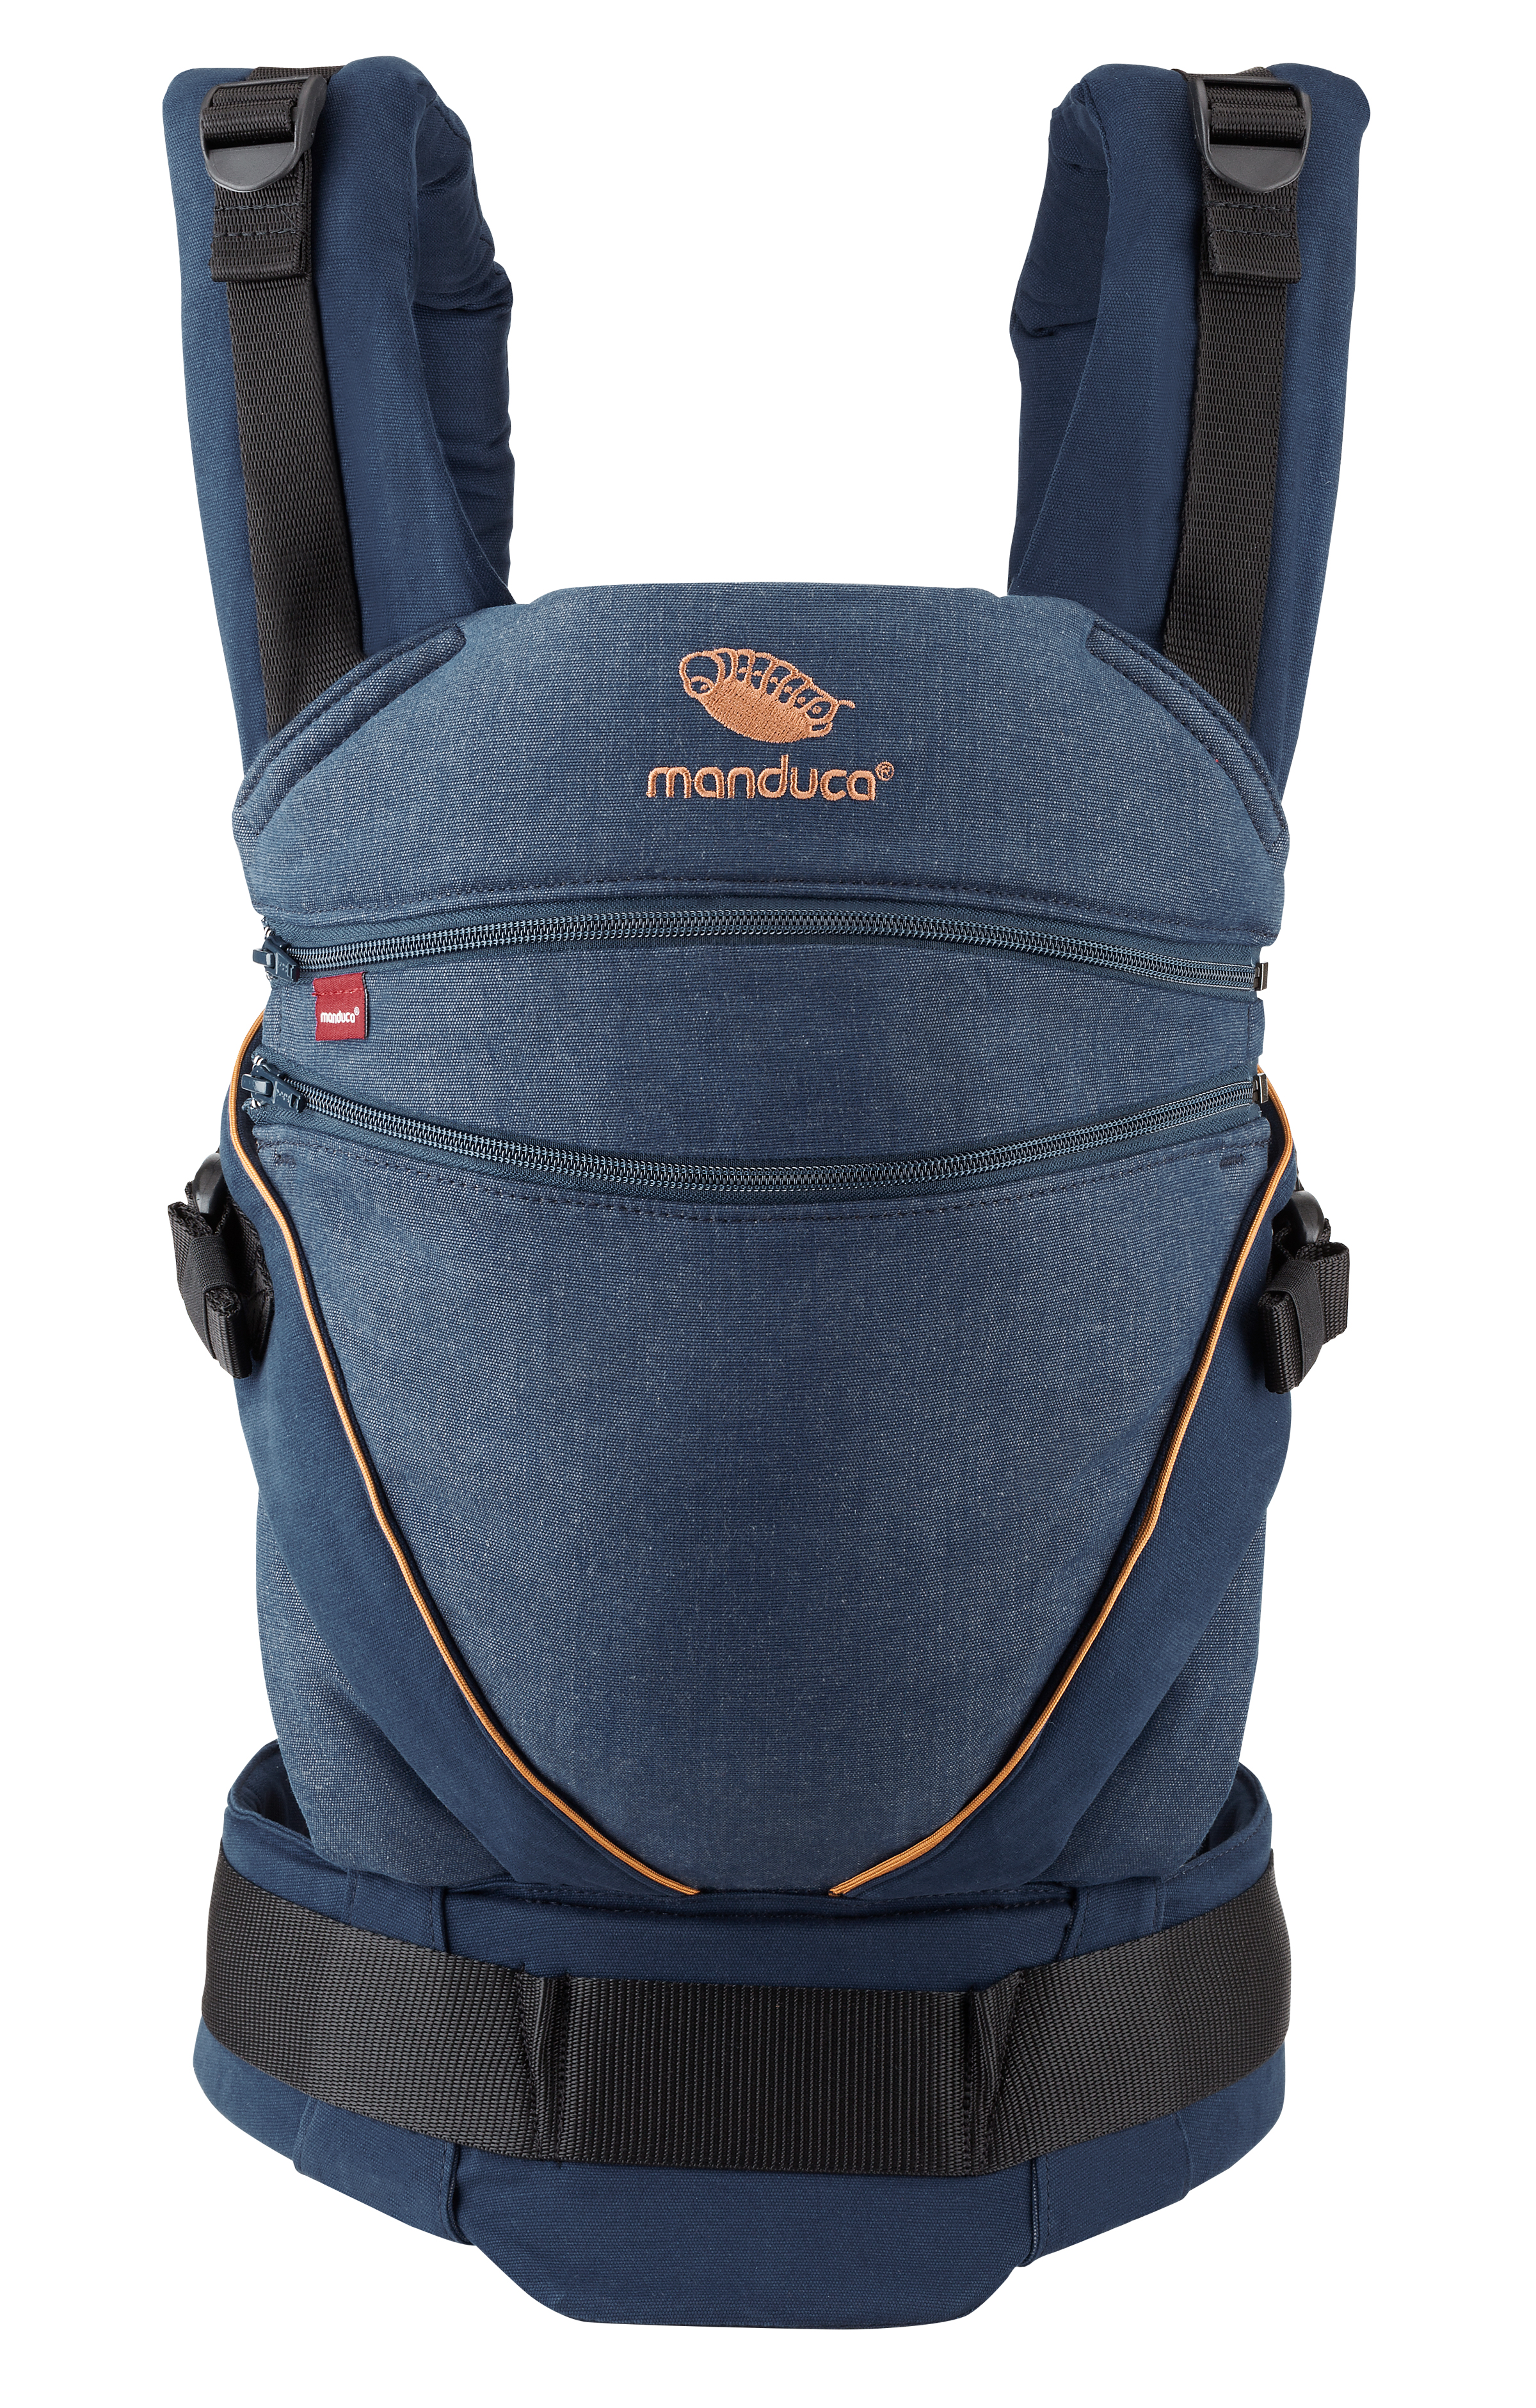 manduca XT, denimblue-toffee